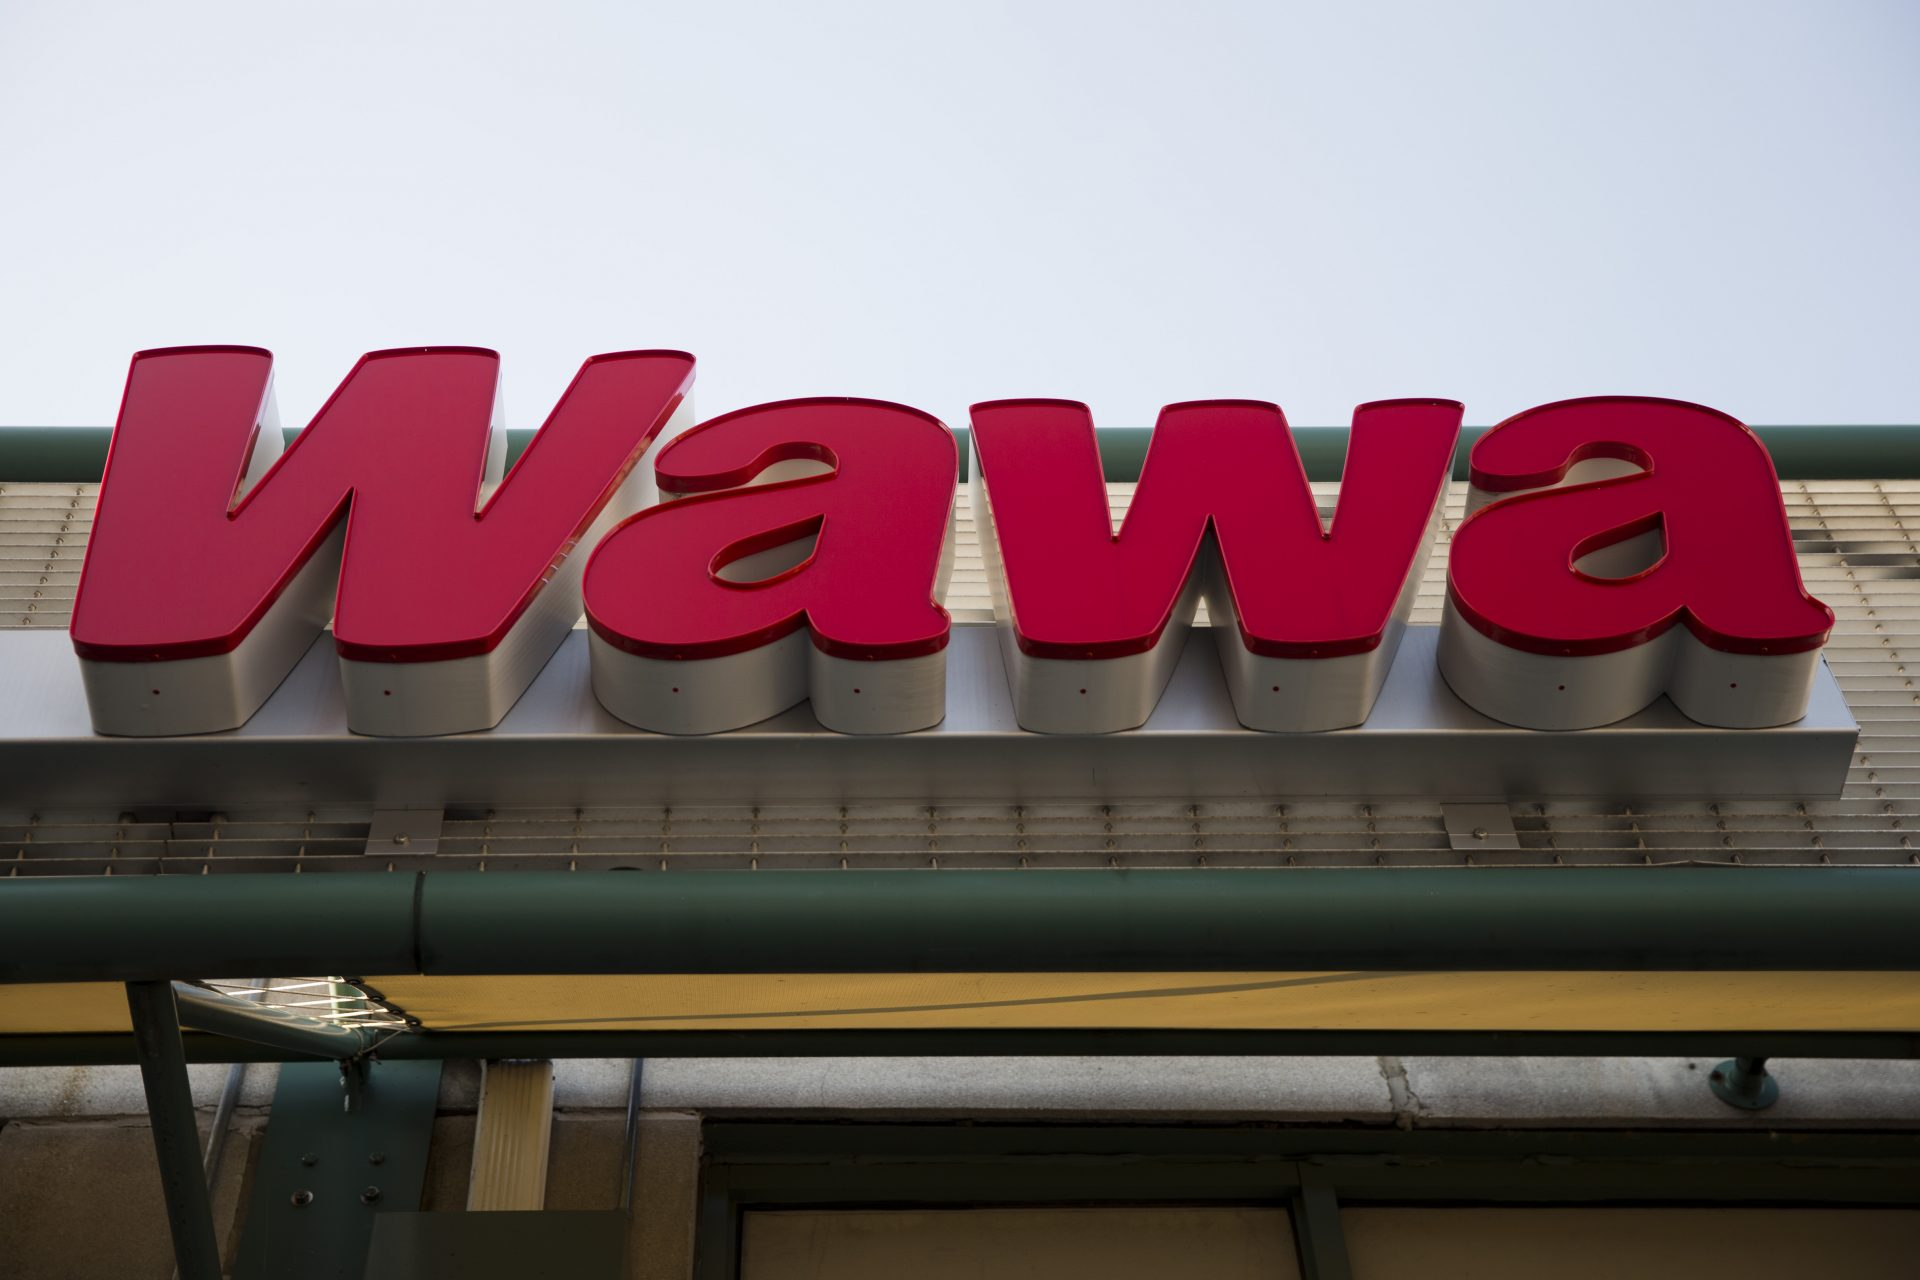 This April 2, 2015 file photo shows a Wawa convenience store in Philadelphia.